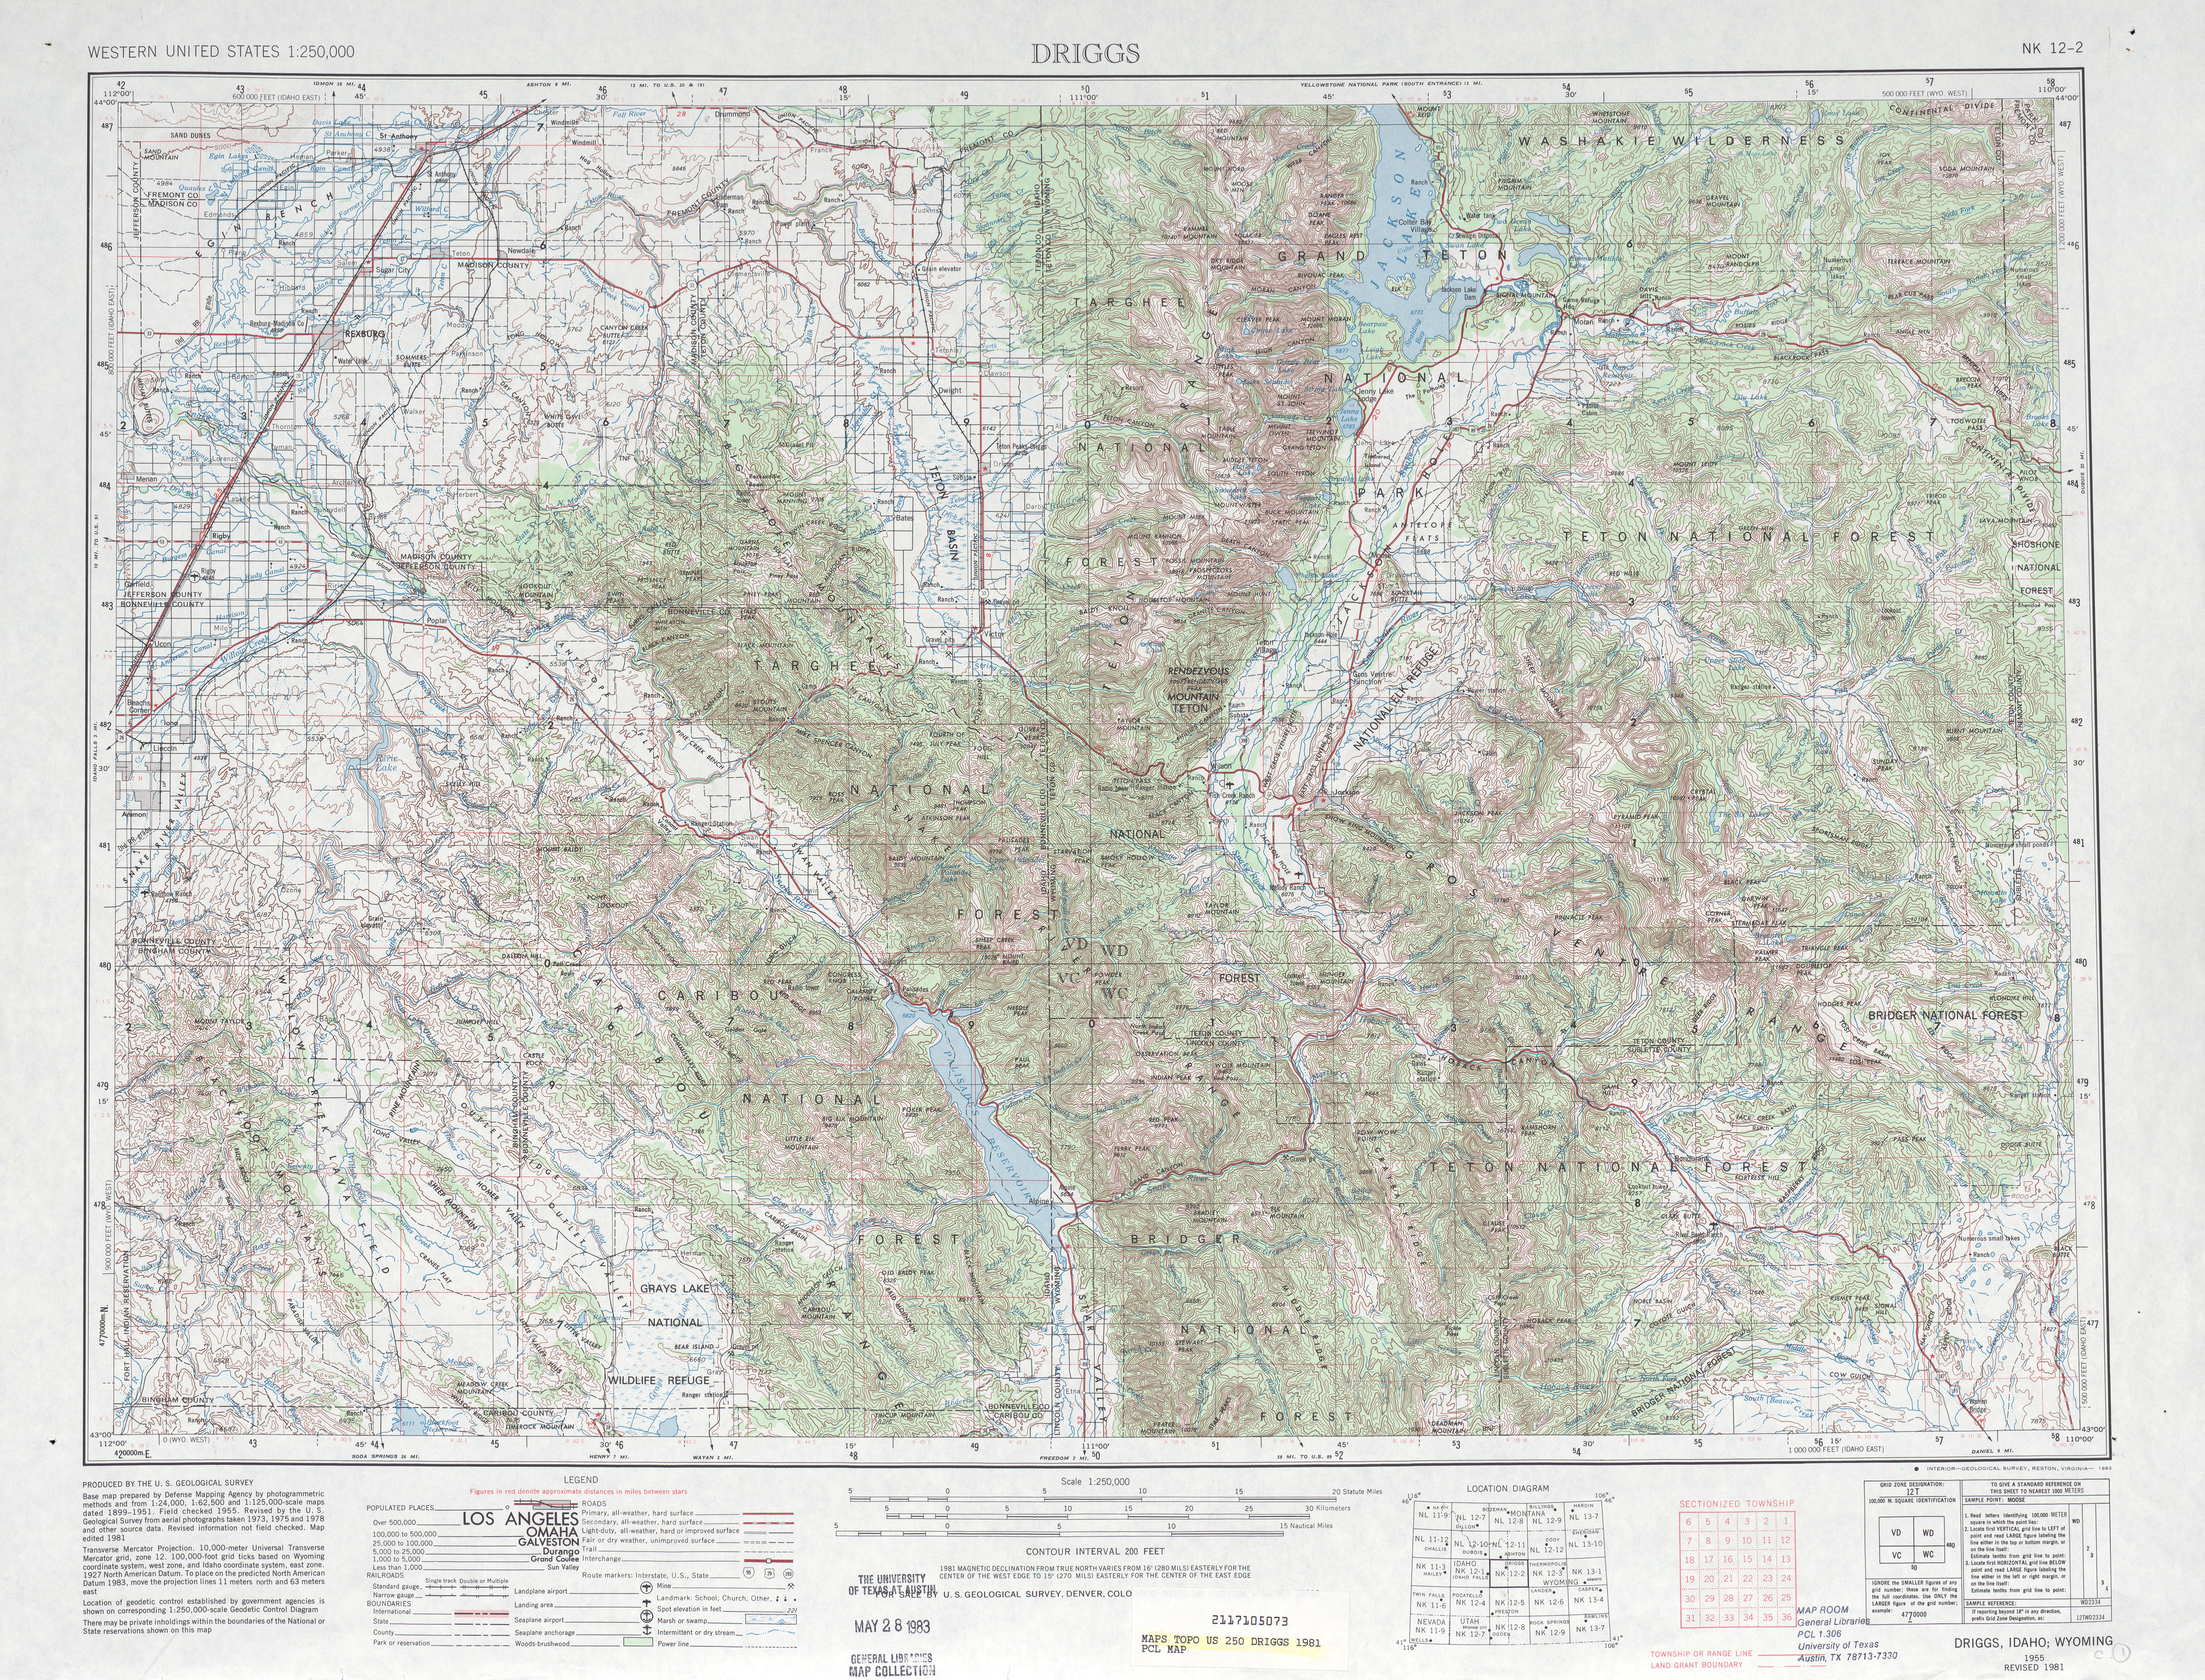 Driggs Topographic Map Sheet, United States